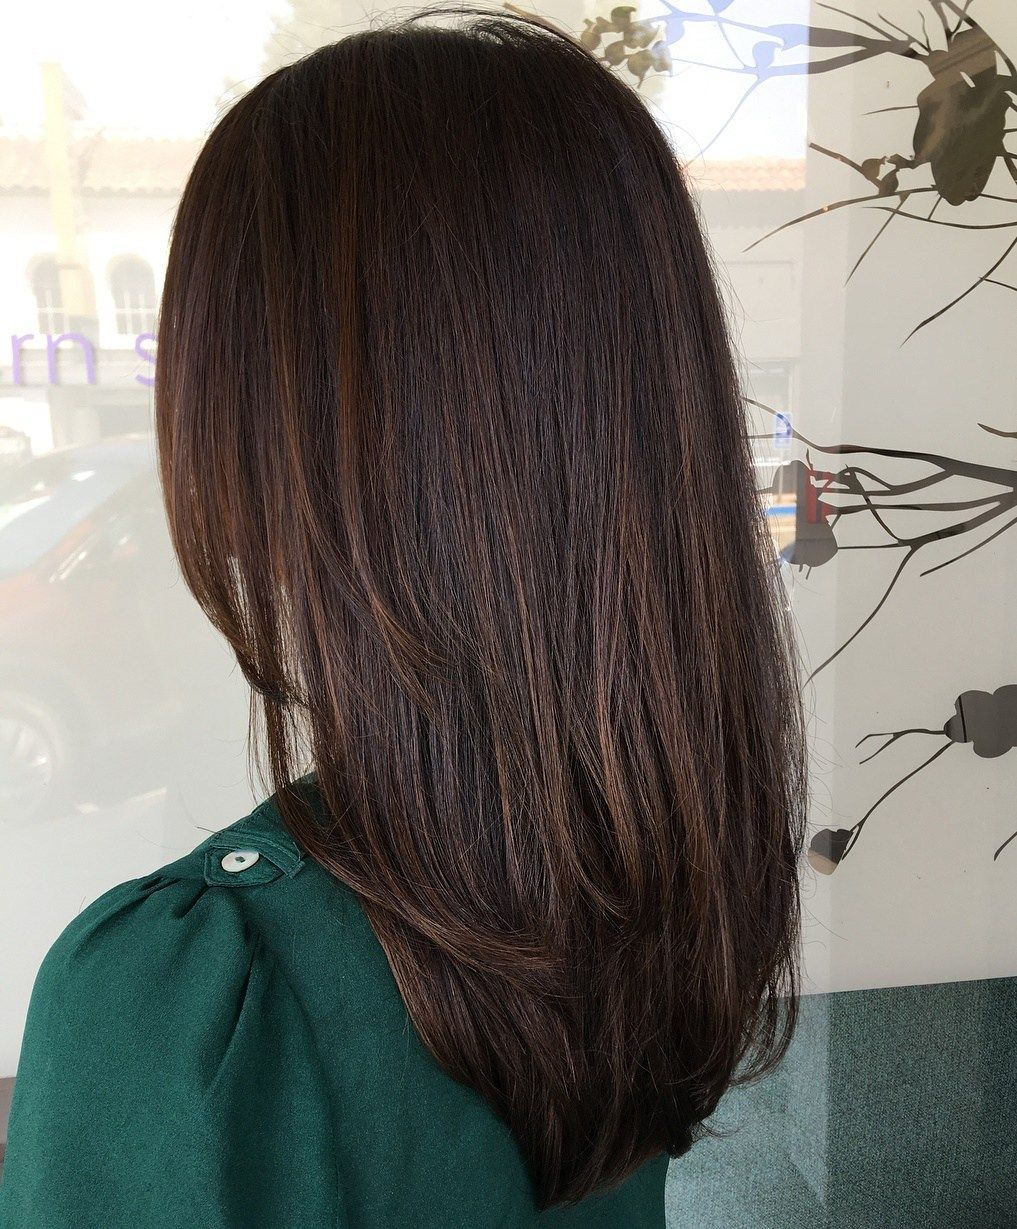 Straight Dark Brown Highlighted Hairstyle Hair Highlights Brown Blonde Hair Hair Styles